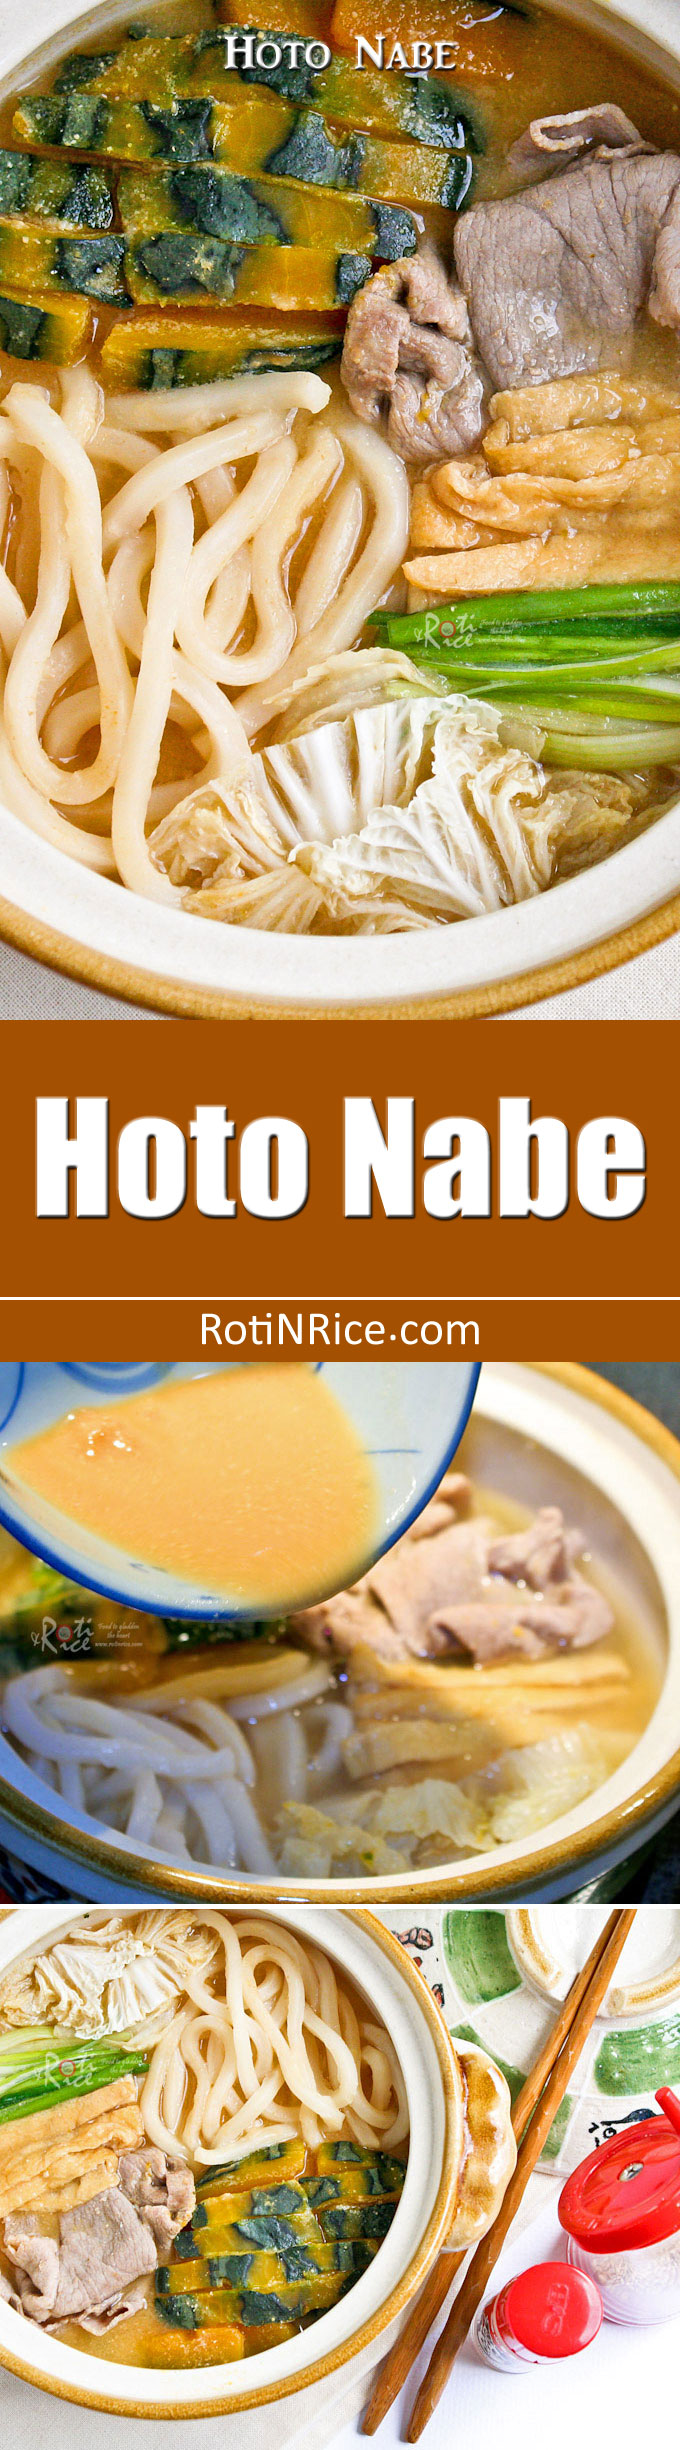 Warm and comforting Hoto Nabe (Flat Noodles Miso Hot Pot) with kabocha squash, thinly sliced pork, napa cabbage and tofu. Perfect for the cooler months! | RotiNRice.com